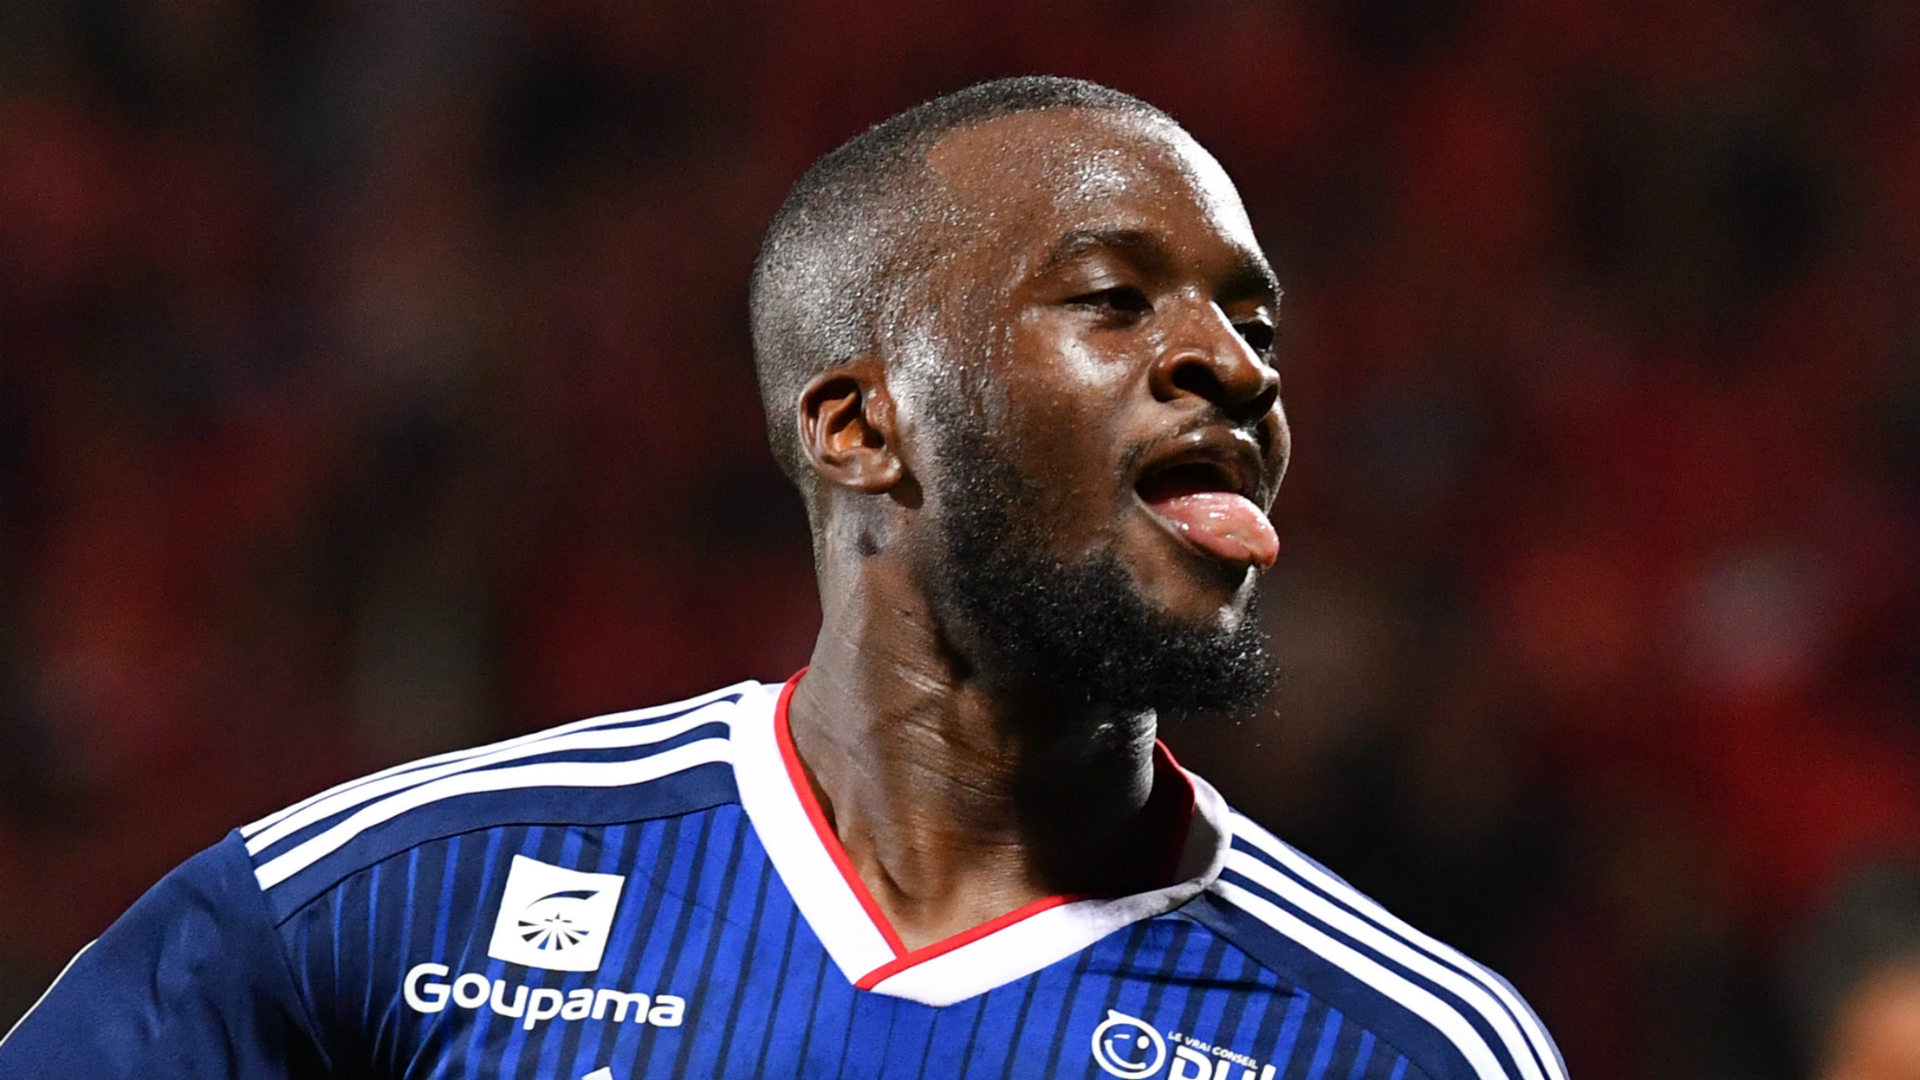 Tottenham target Ndombele plans to leave Lyon, confirms president